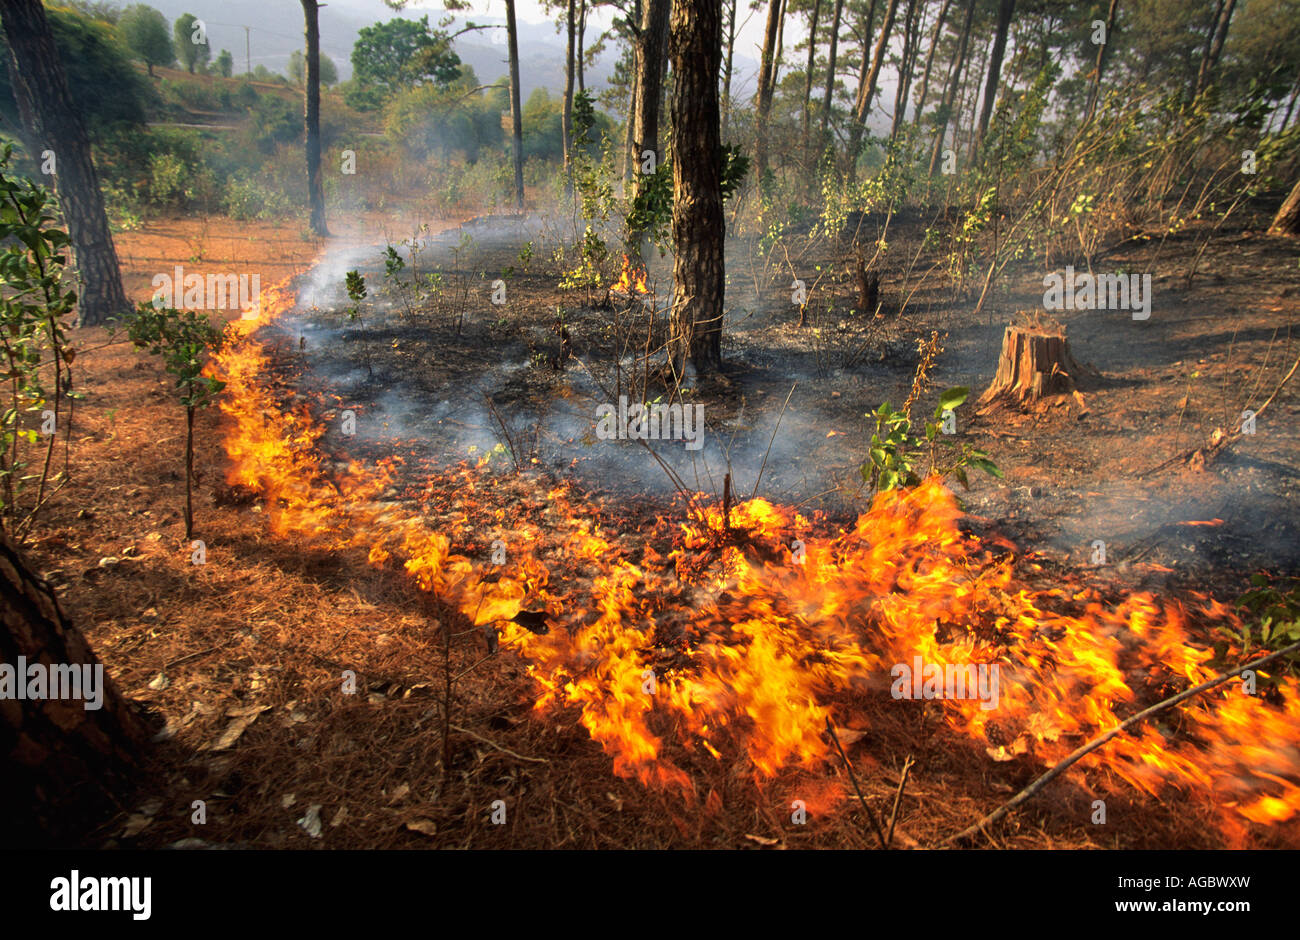 Myanmar, Kalaw, Fire in forest - Stock Image